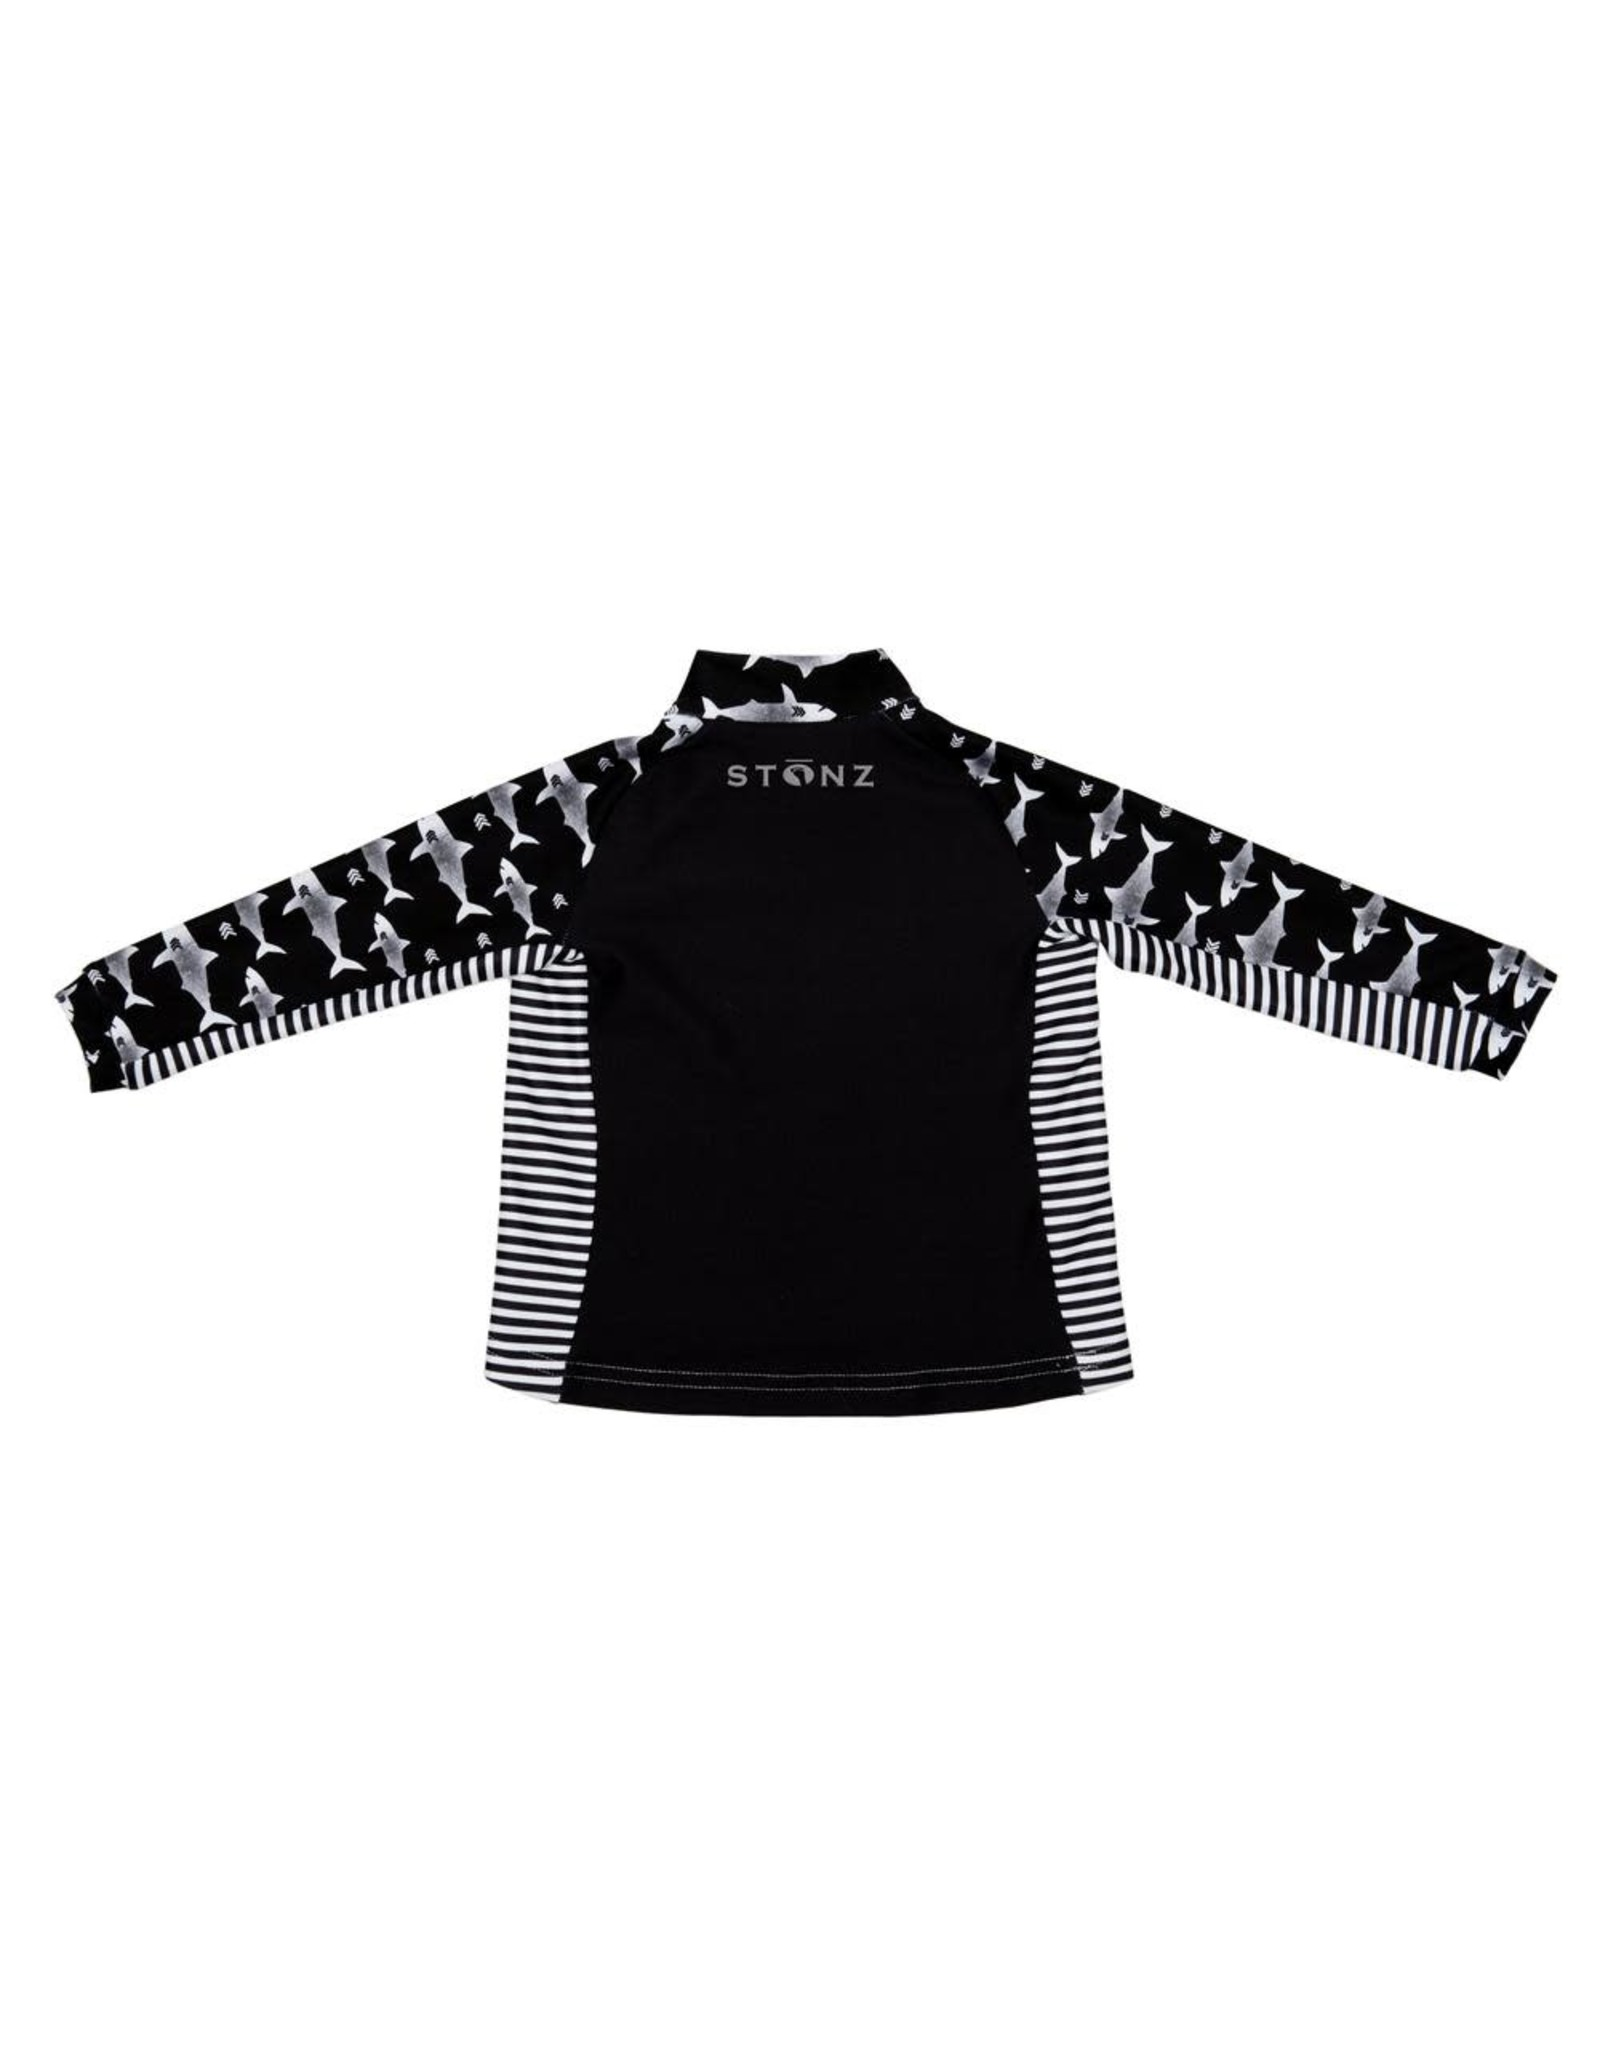 Stonz Stonz Kidz Top, Black/Shark